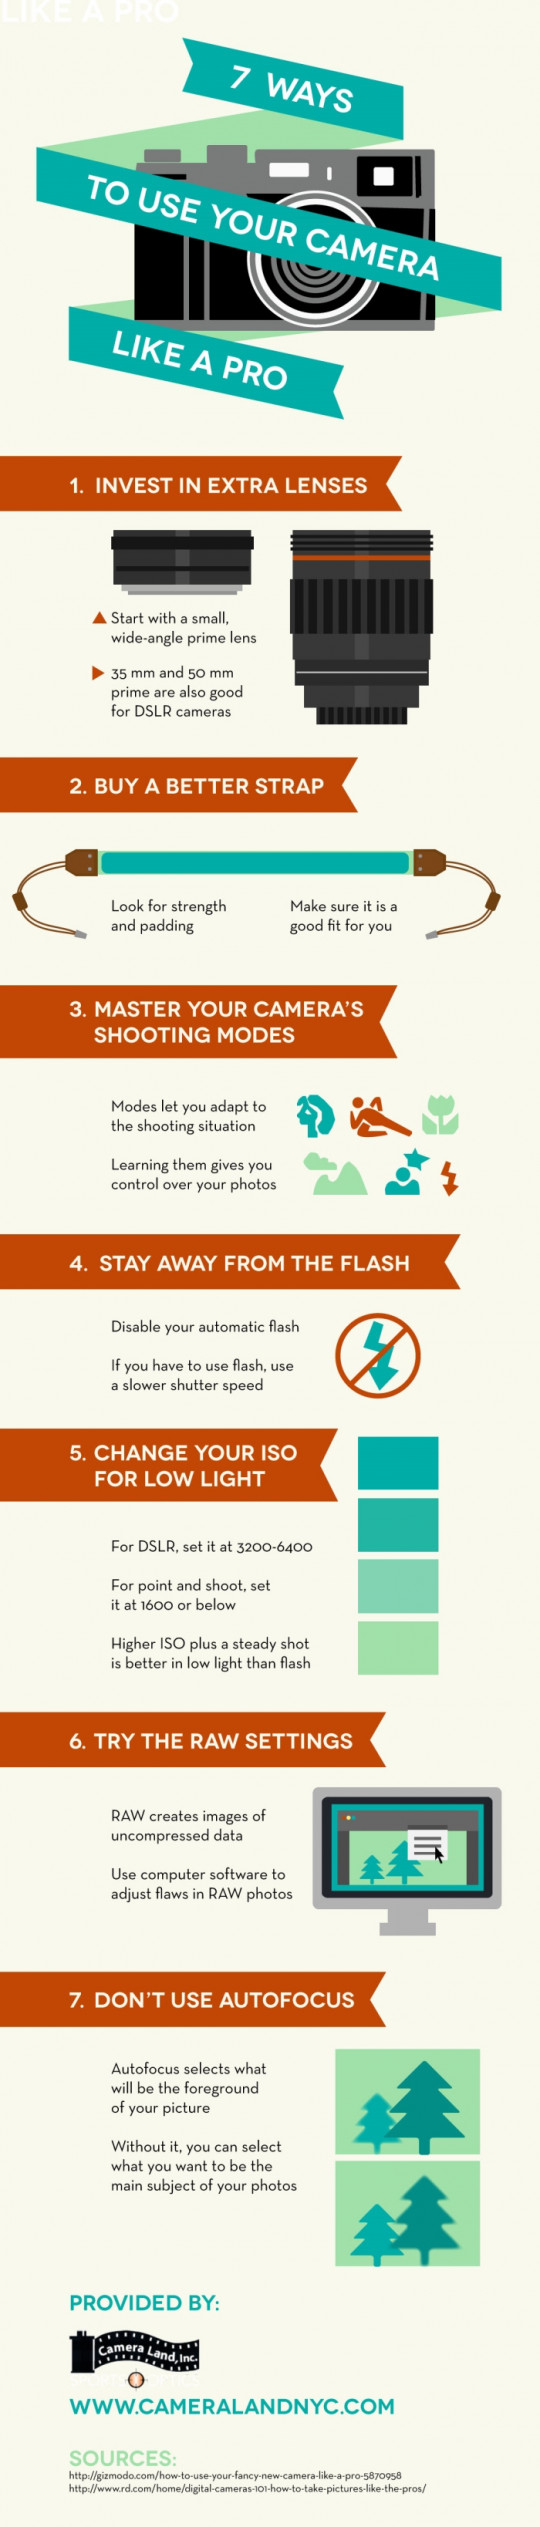 7 Ways to Use Your Camera Like a Pro